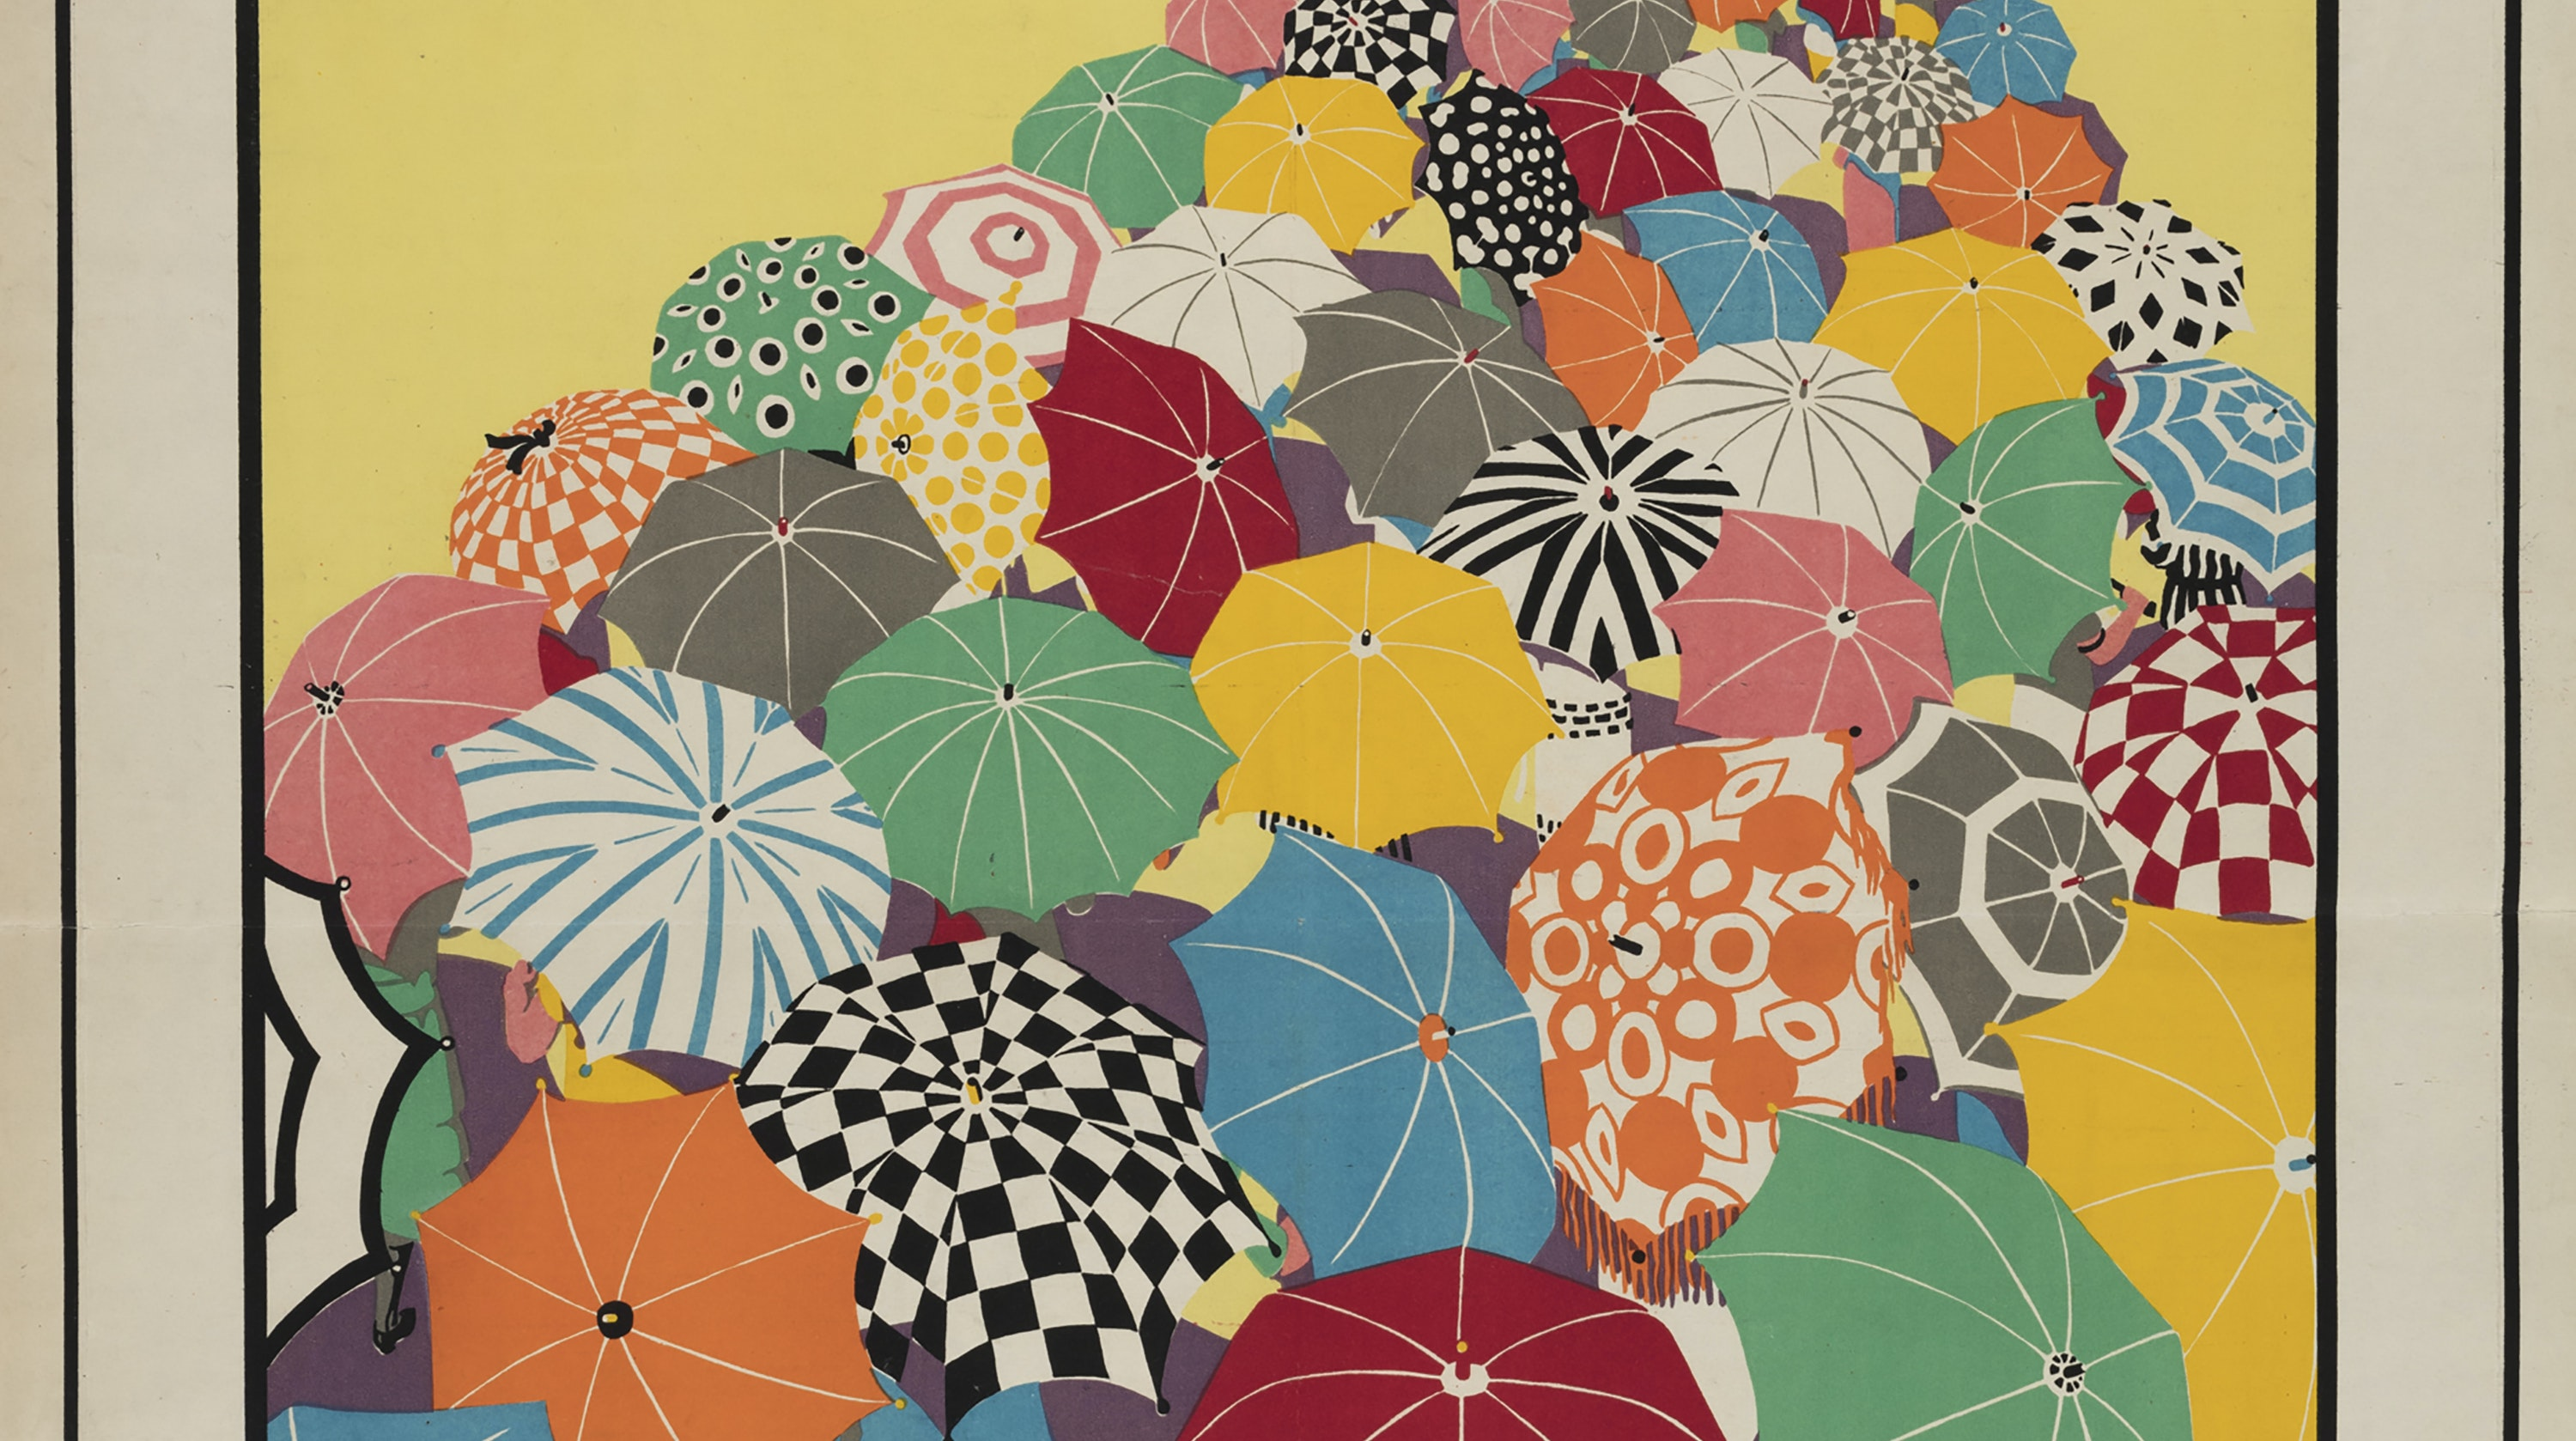 Summer Sales: A poster for the London Underground that depicts colorful and patterned umbrellas on a bright yellow background.